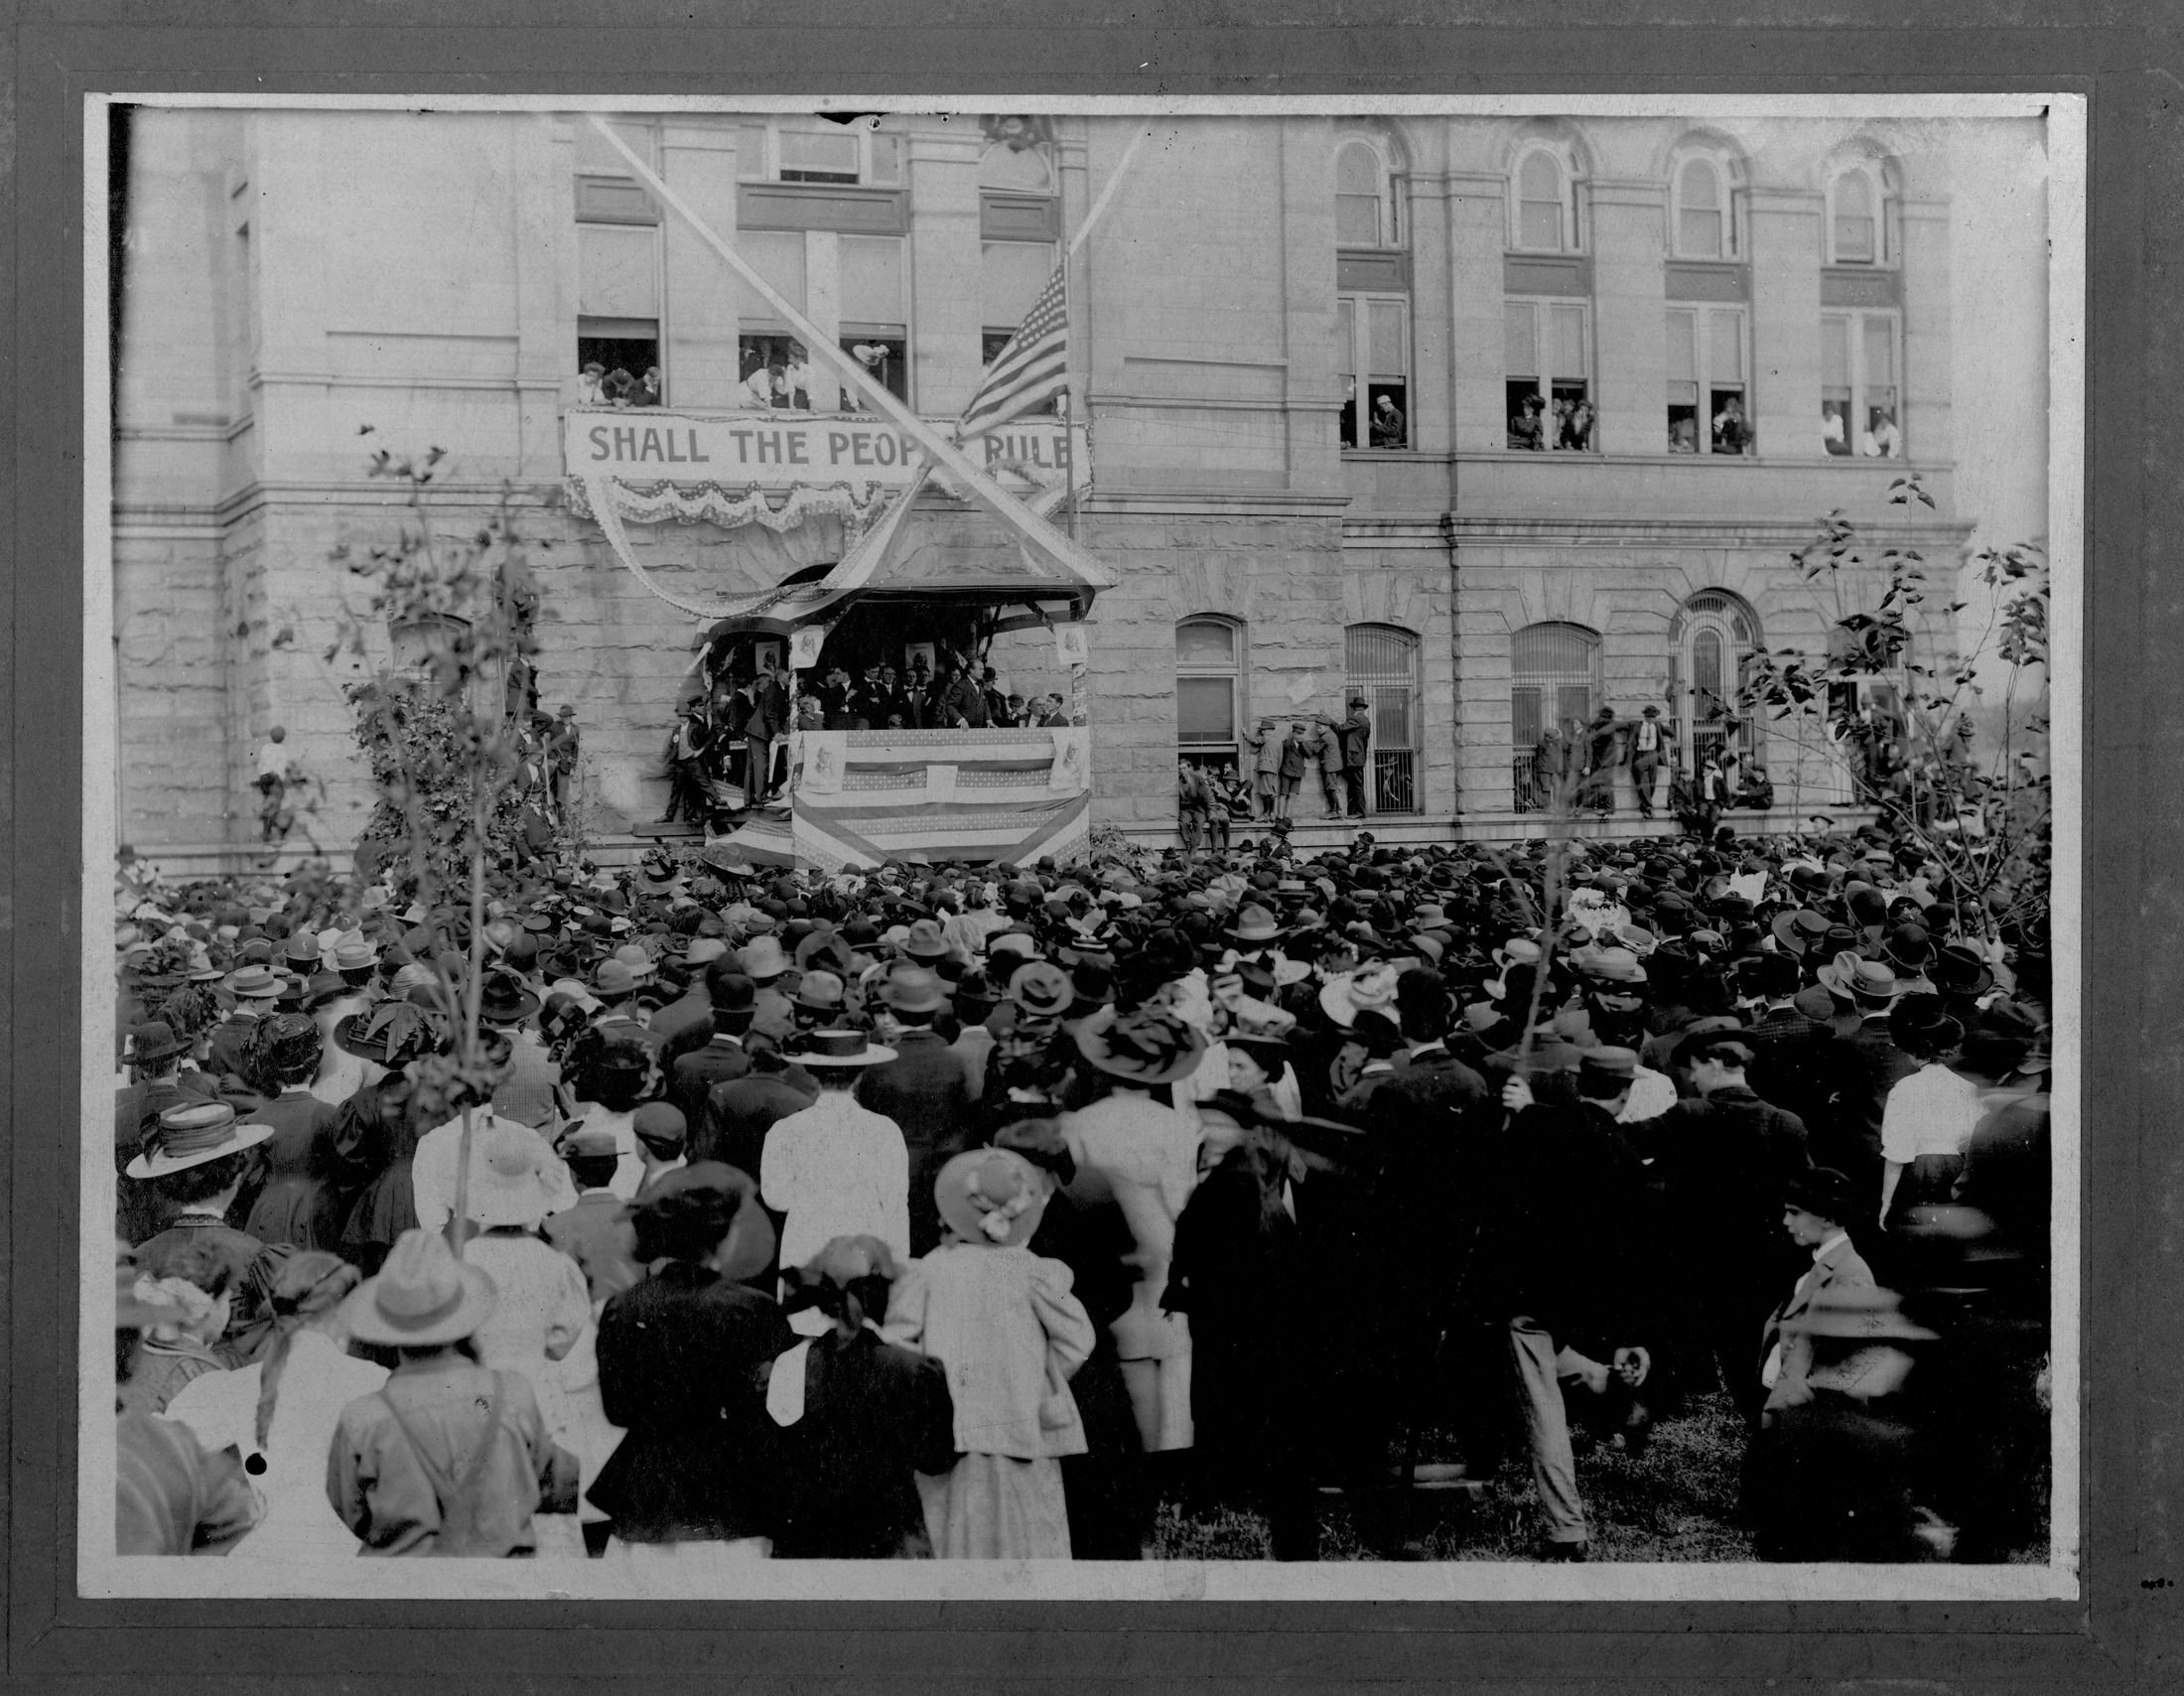 Presidential candidate and popular orator William Jennings Bryan delivering a speech, likely during the 1908 election. The courthouse has been a popular rallying spot for presidential candidates and other politicians visiting Huntington. Image courtesy of